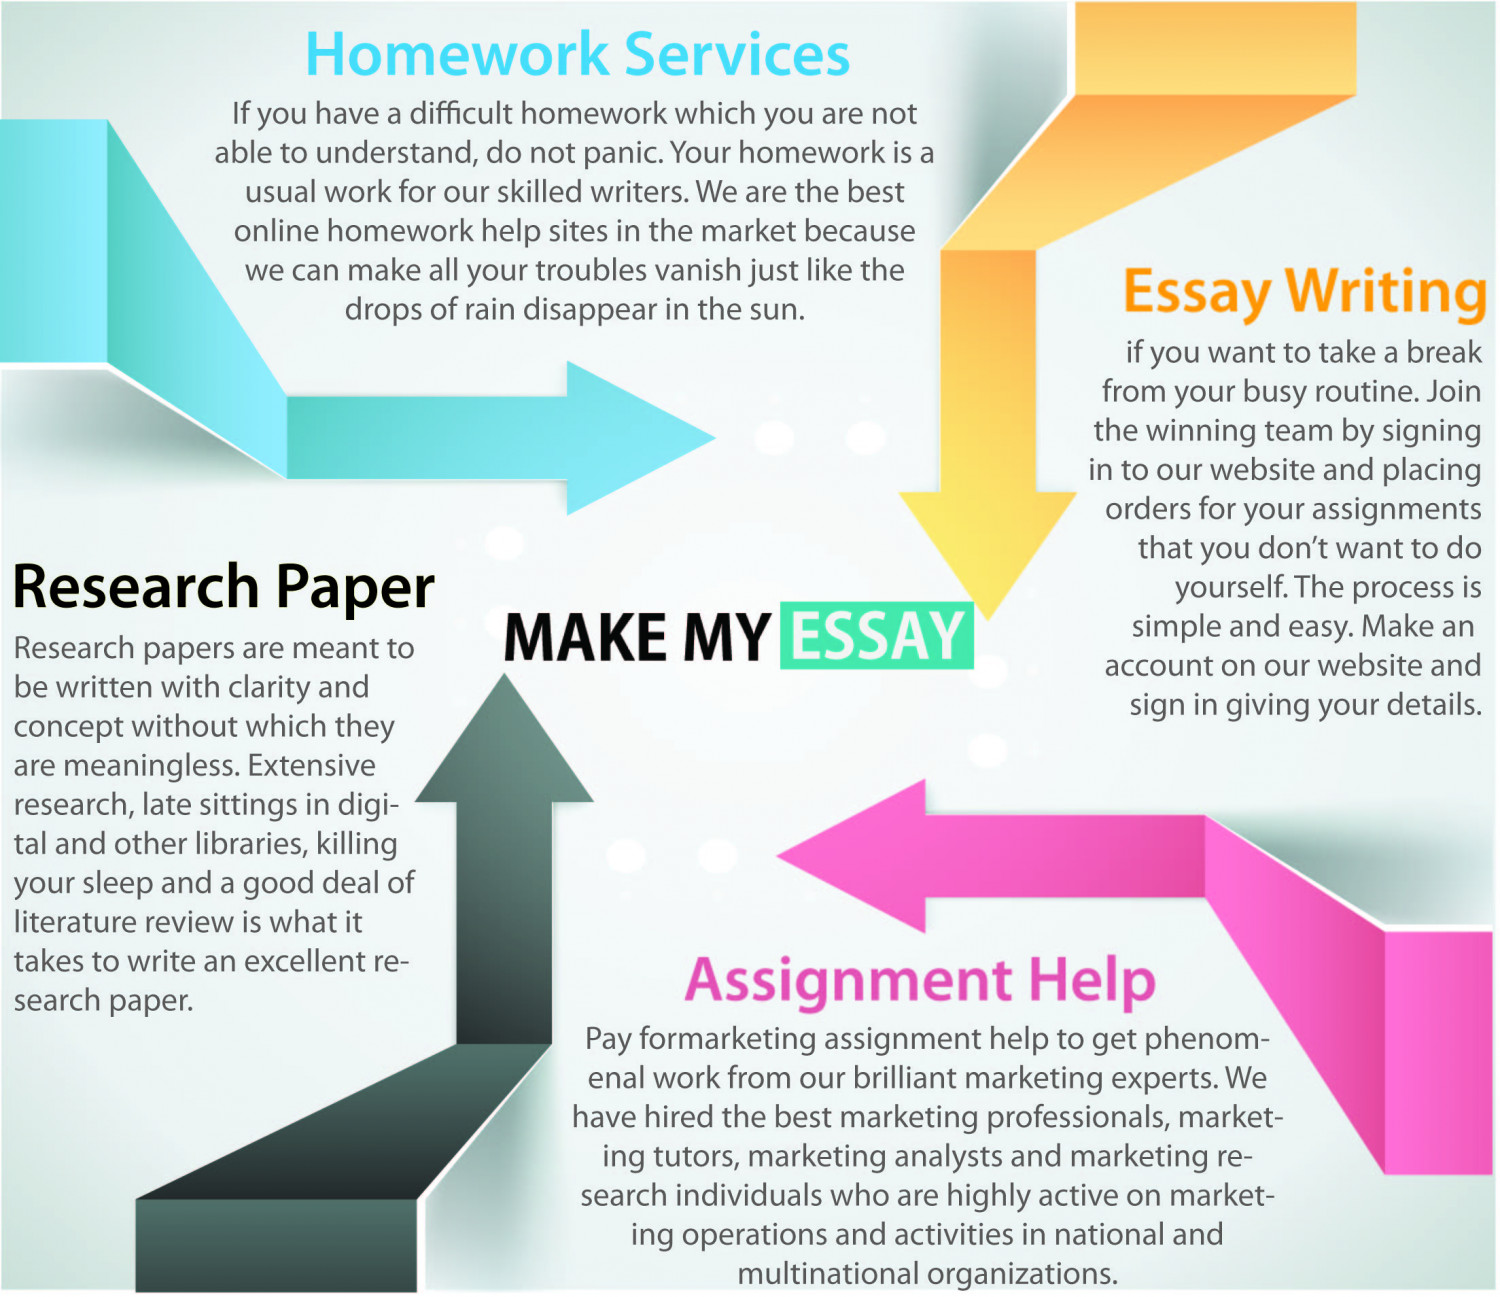 Synthesis Essay Tips We Know Who Can Write Top Quality Essays For You At Cheap Rates   Makemyessay Thesis Essay Examples also Proposal Argument Essay We Know Who Can Write Top Quality Essays For You At Cheap Rates  High School Admission Essay